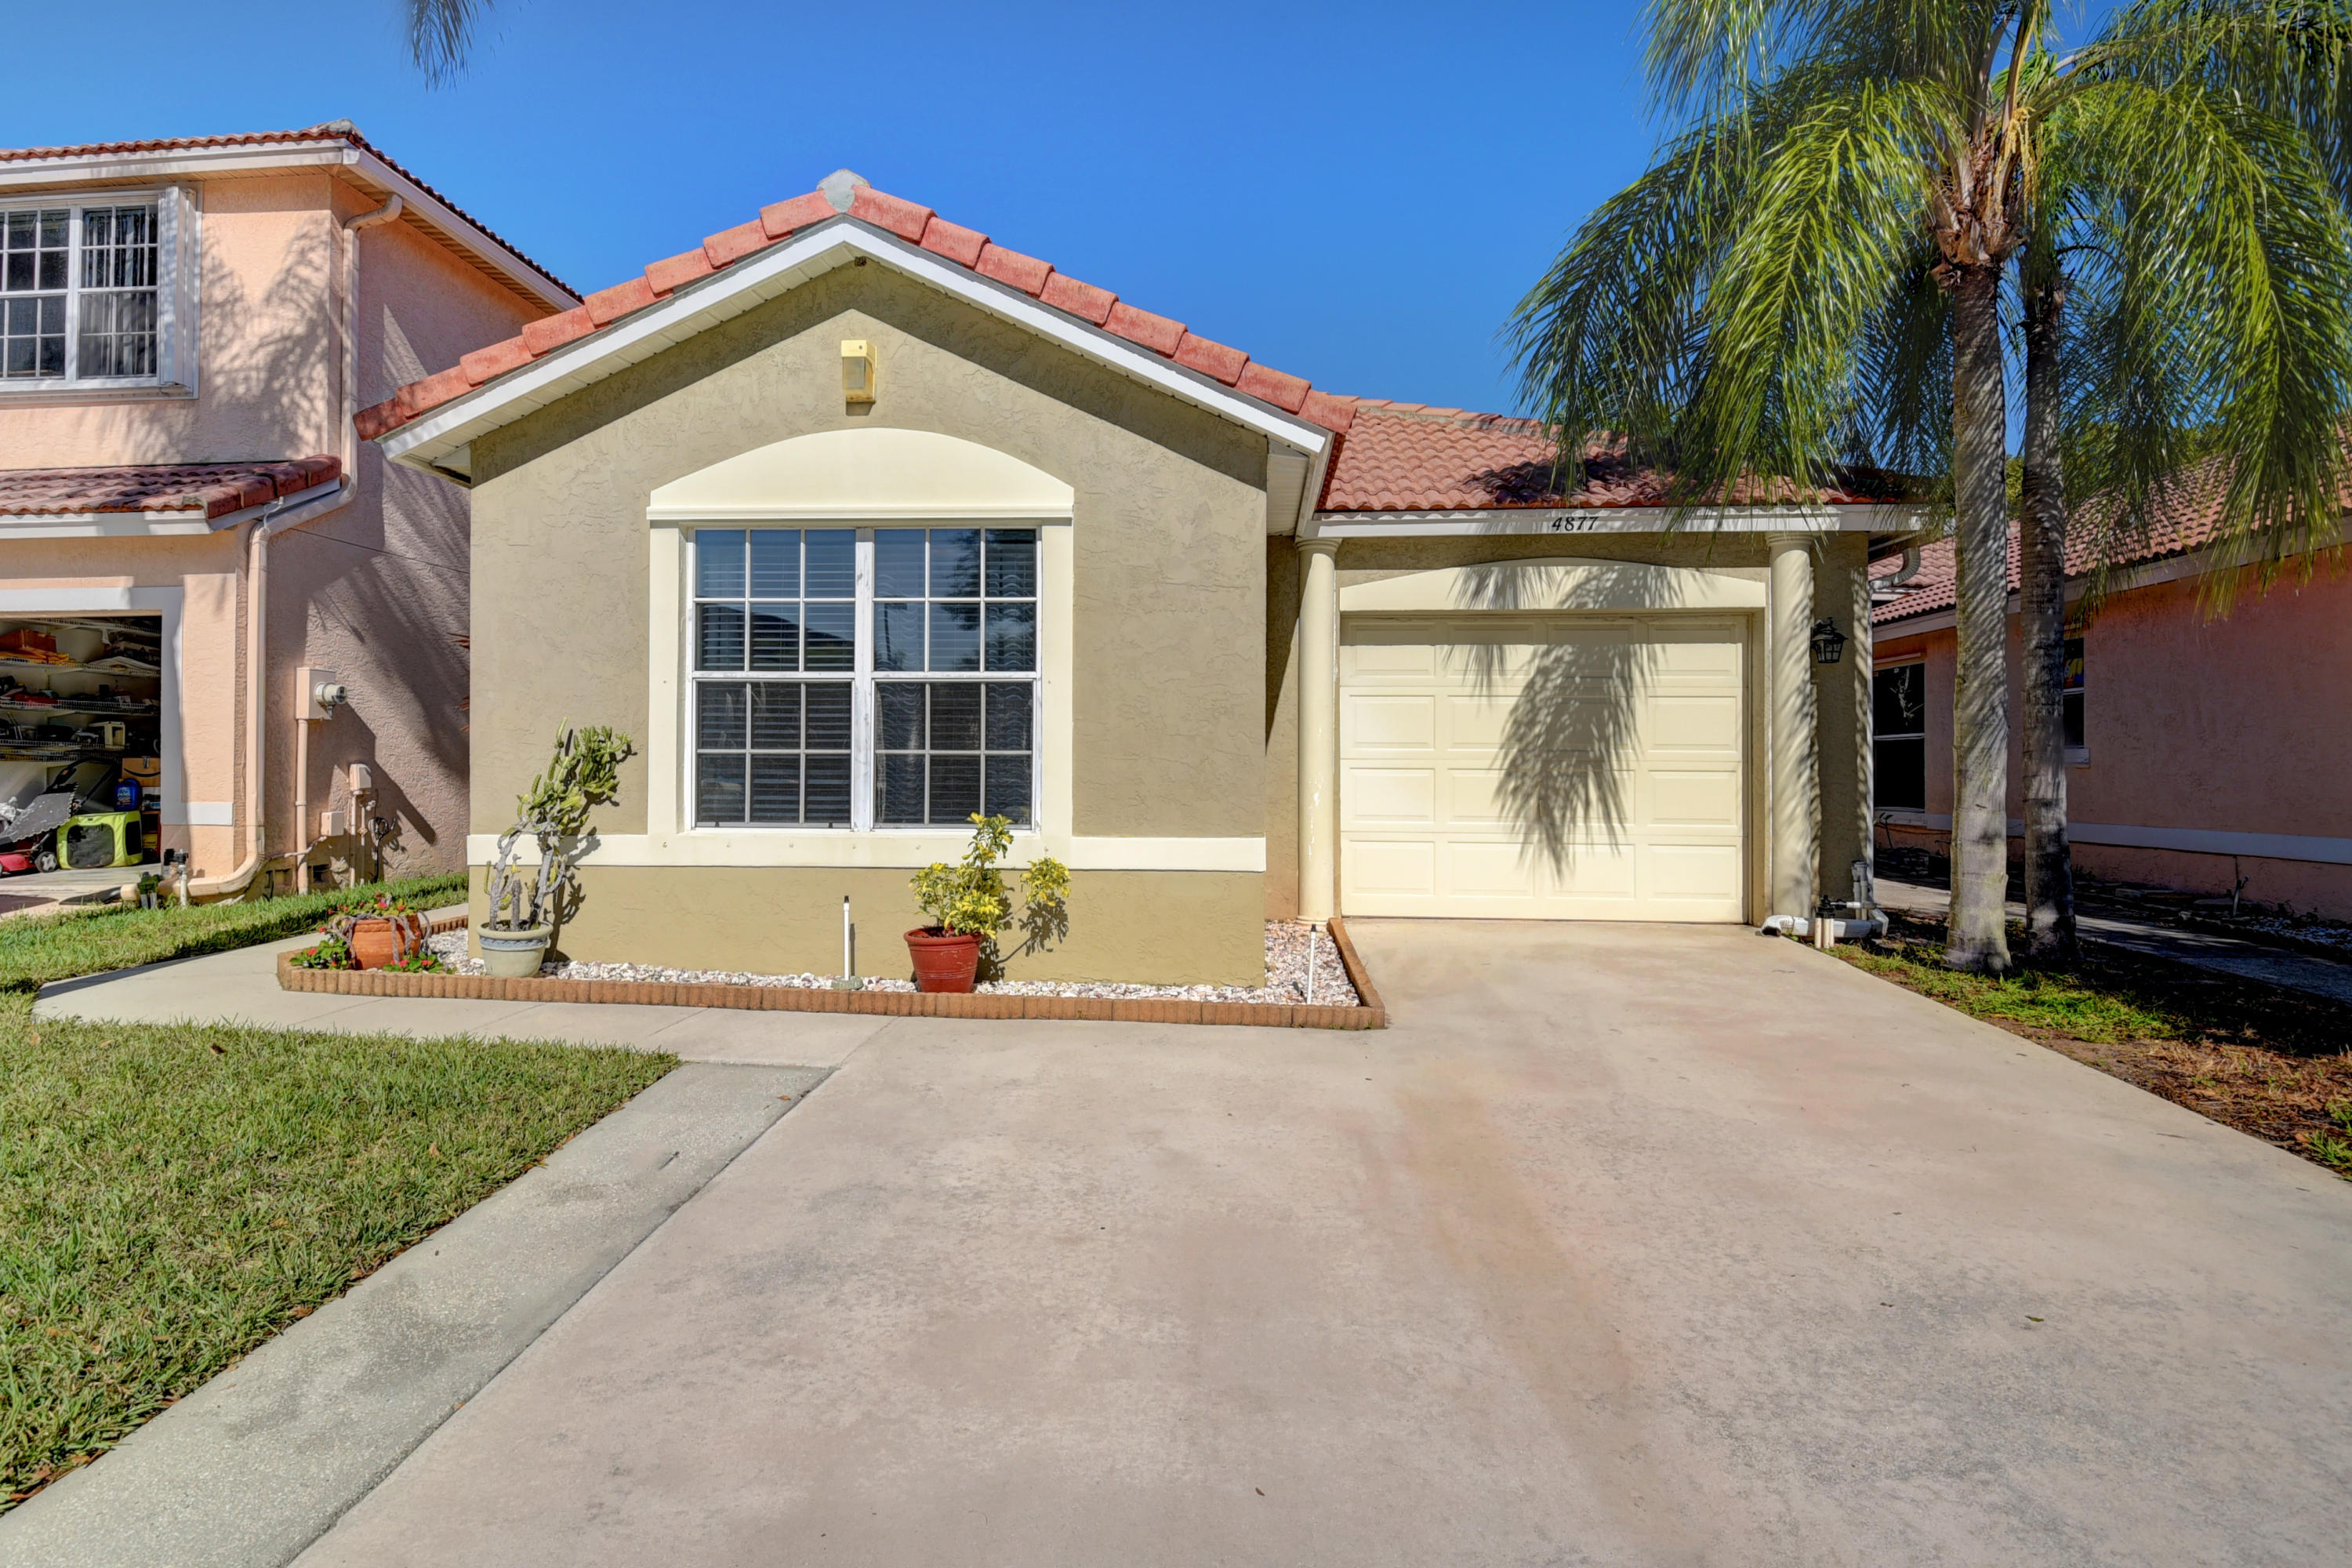 Wonderful 3/2 in the heart of Boynton Beach. This home offers a newer kitchen with white appliances . The home features a screened in patio. There is Laminate wood floors and tile throughout the home. The master bathroom was just recently updated with a new vanity. The large Master Bedroom offers a walk in closet. The community offers a low hoa with a playground and a clubhouse to come soon. It is conveniently located to major highways, schools, restaurant and entertainment.